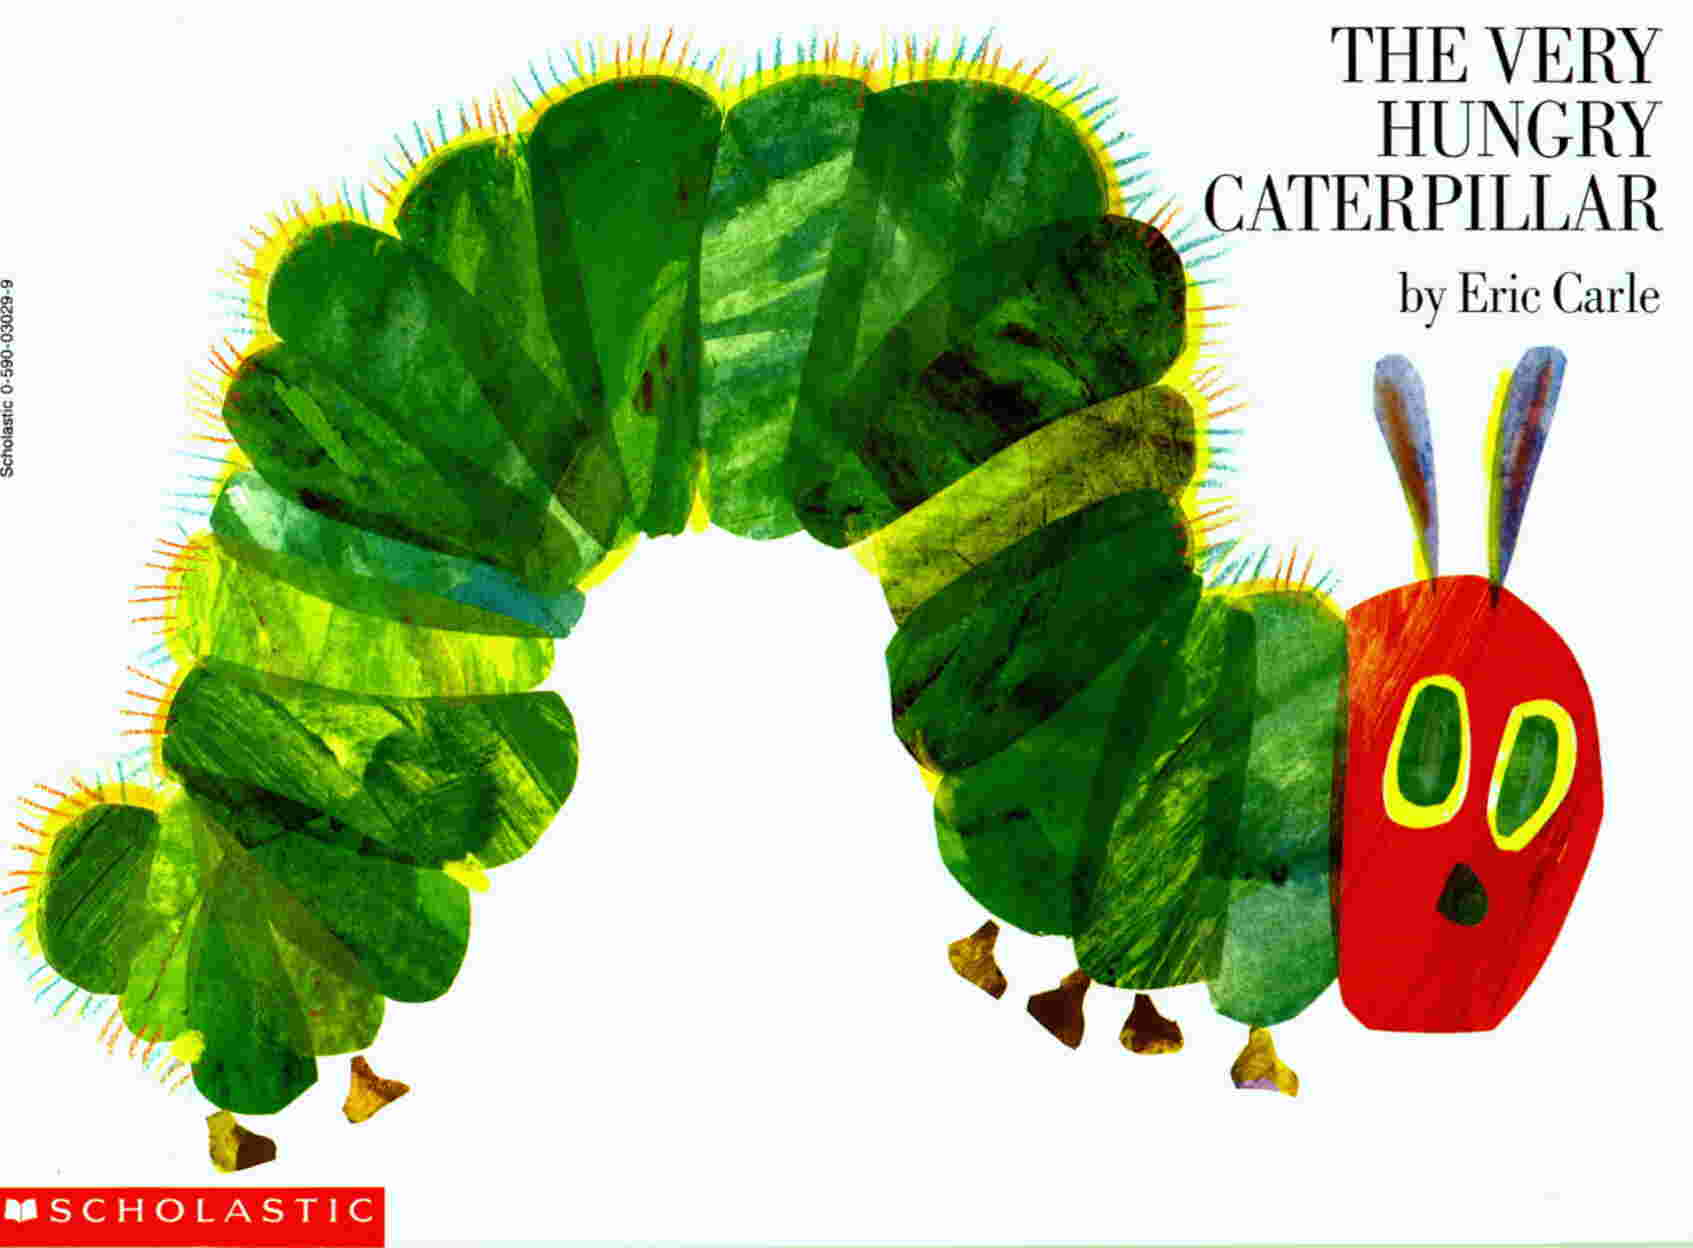 The Very Hungry Caterpillar-Best books for 3 year olds